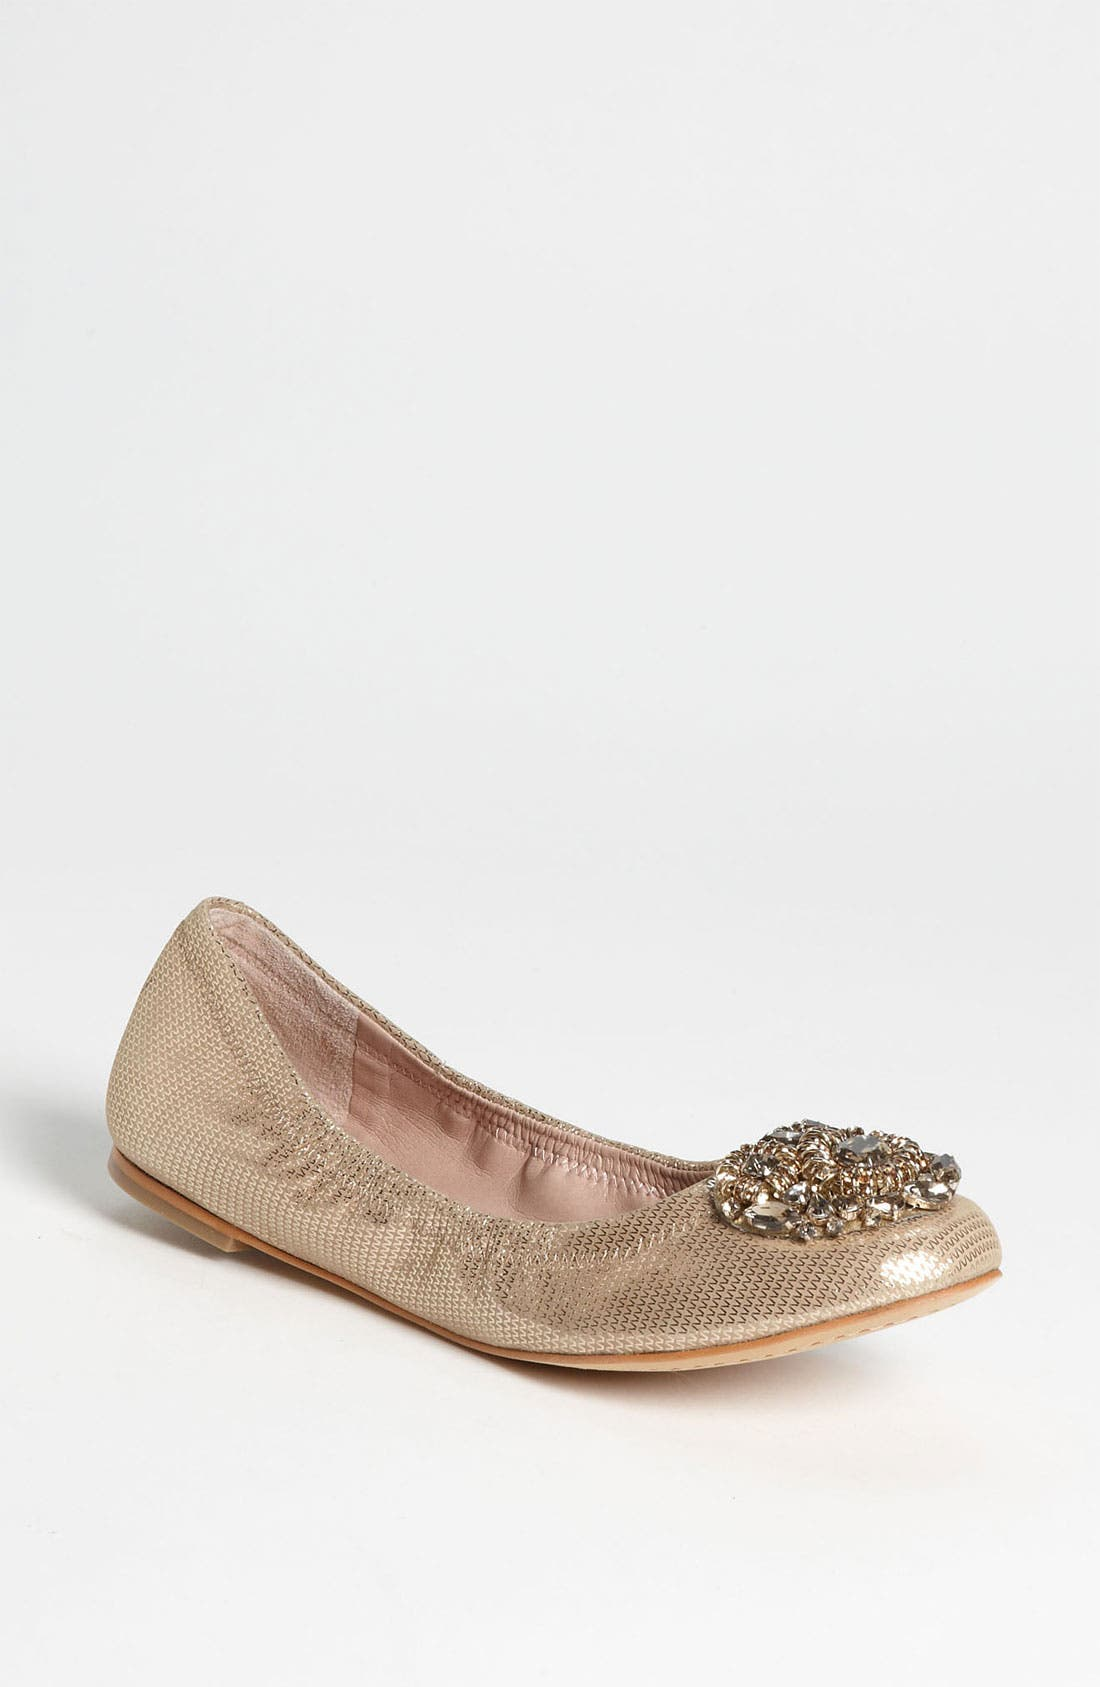 Alternate Image 1 Selected - Vince Camuto 'Parissa' Flat